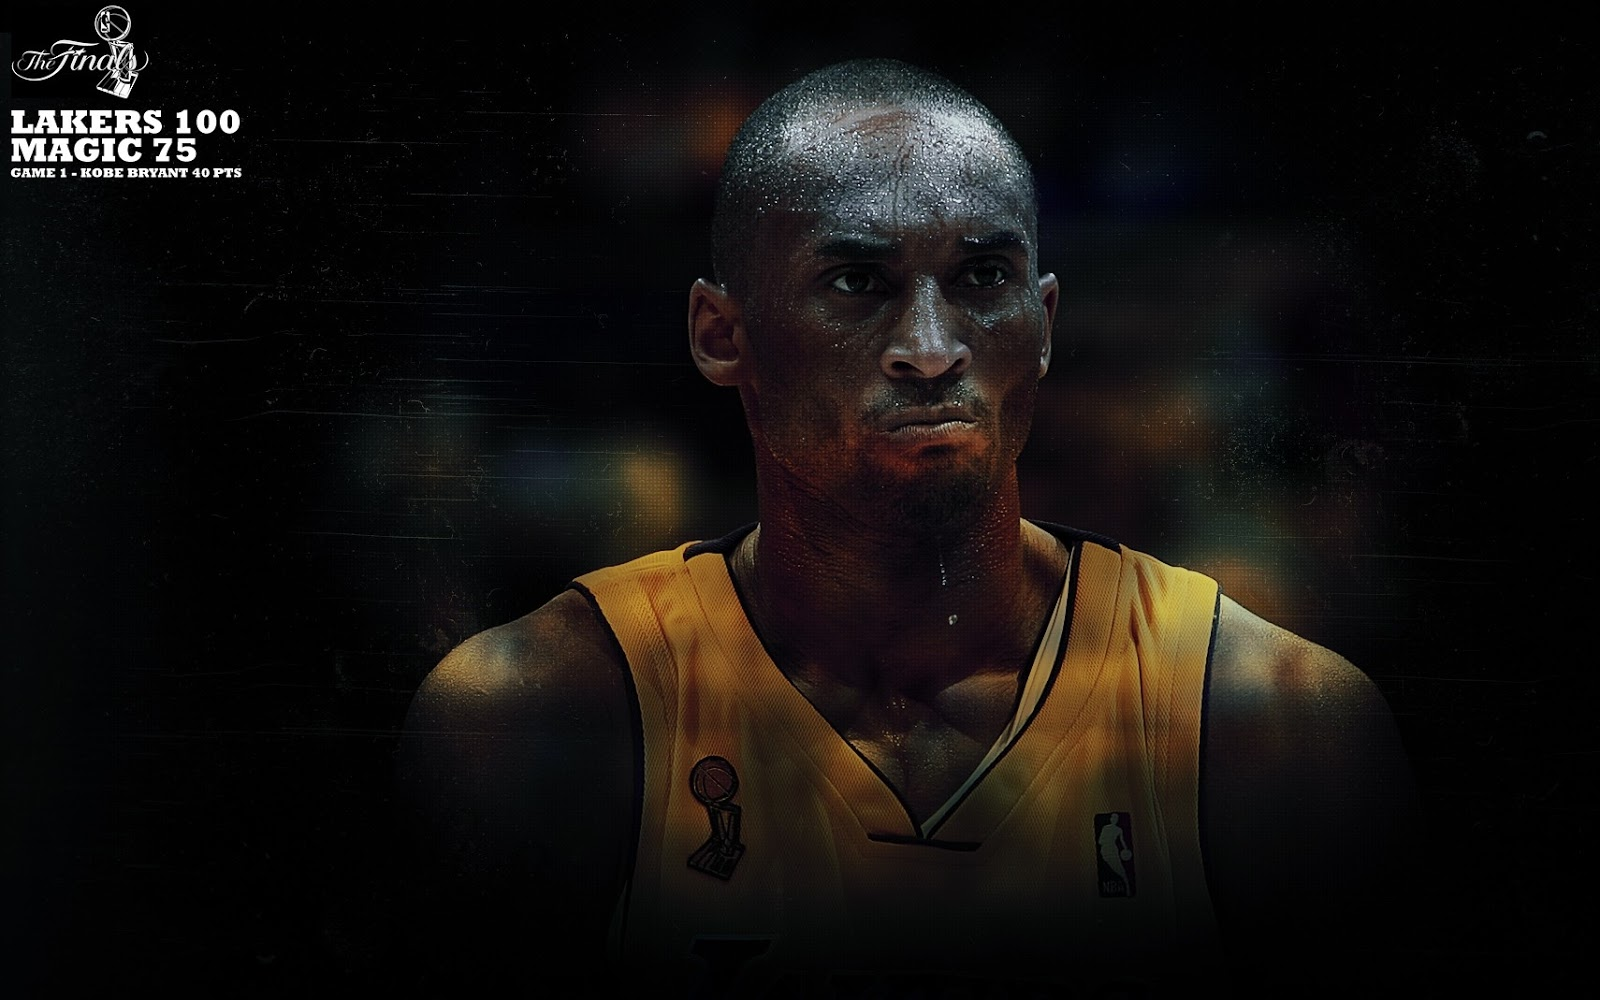 kobe bryant nice wallpapers - photo #3